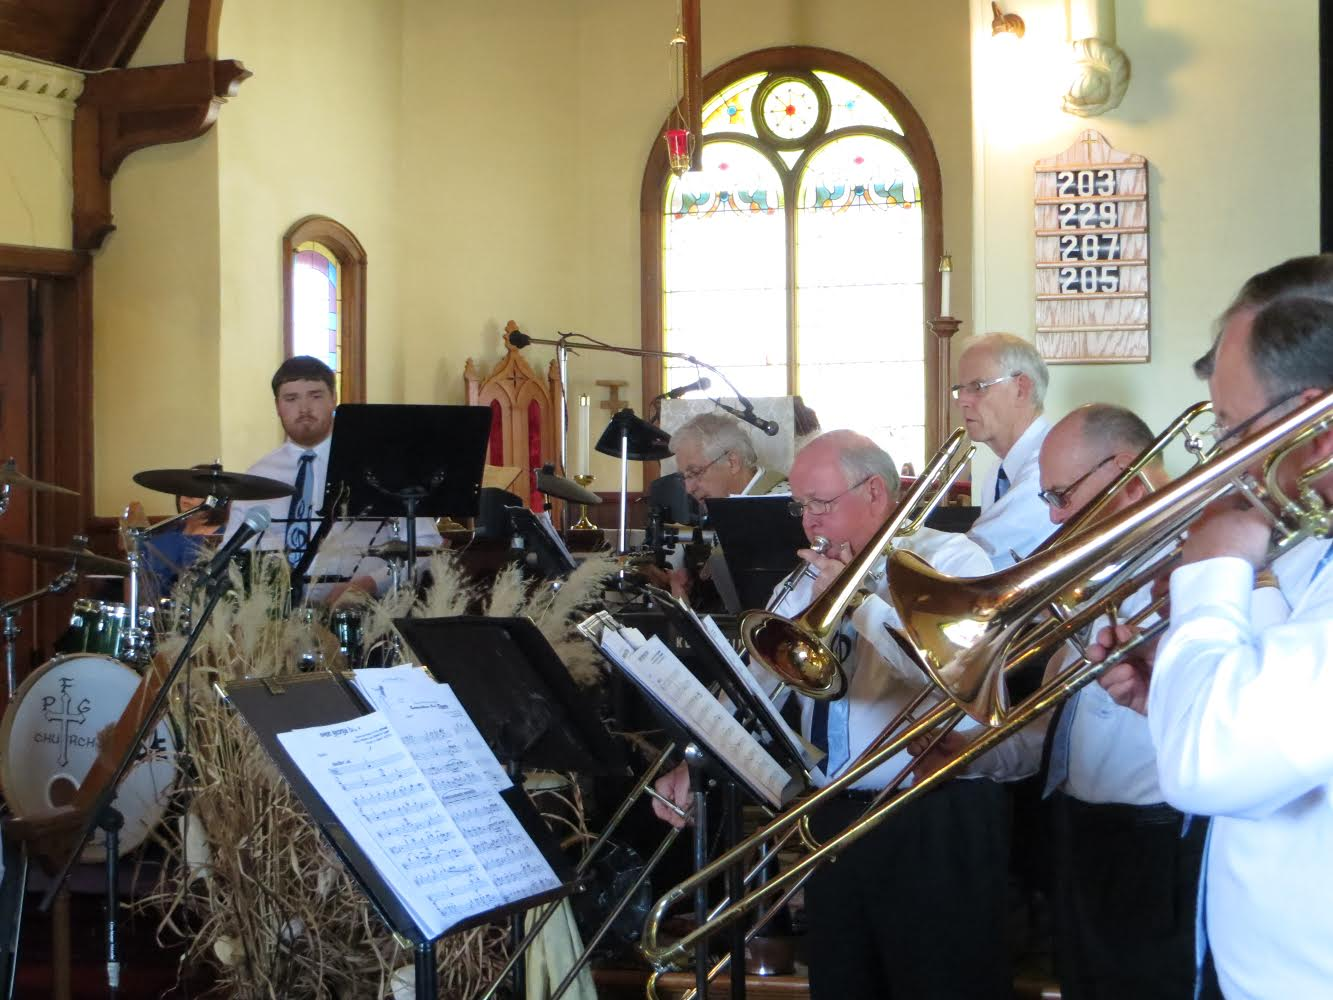 MUSICFEST 2018 at St. James Anglican church